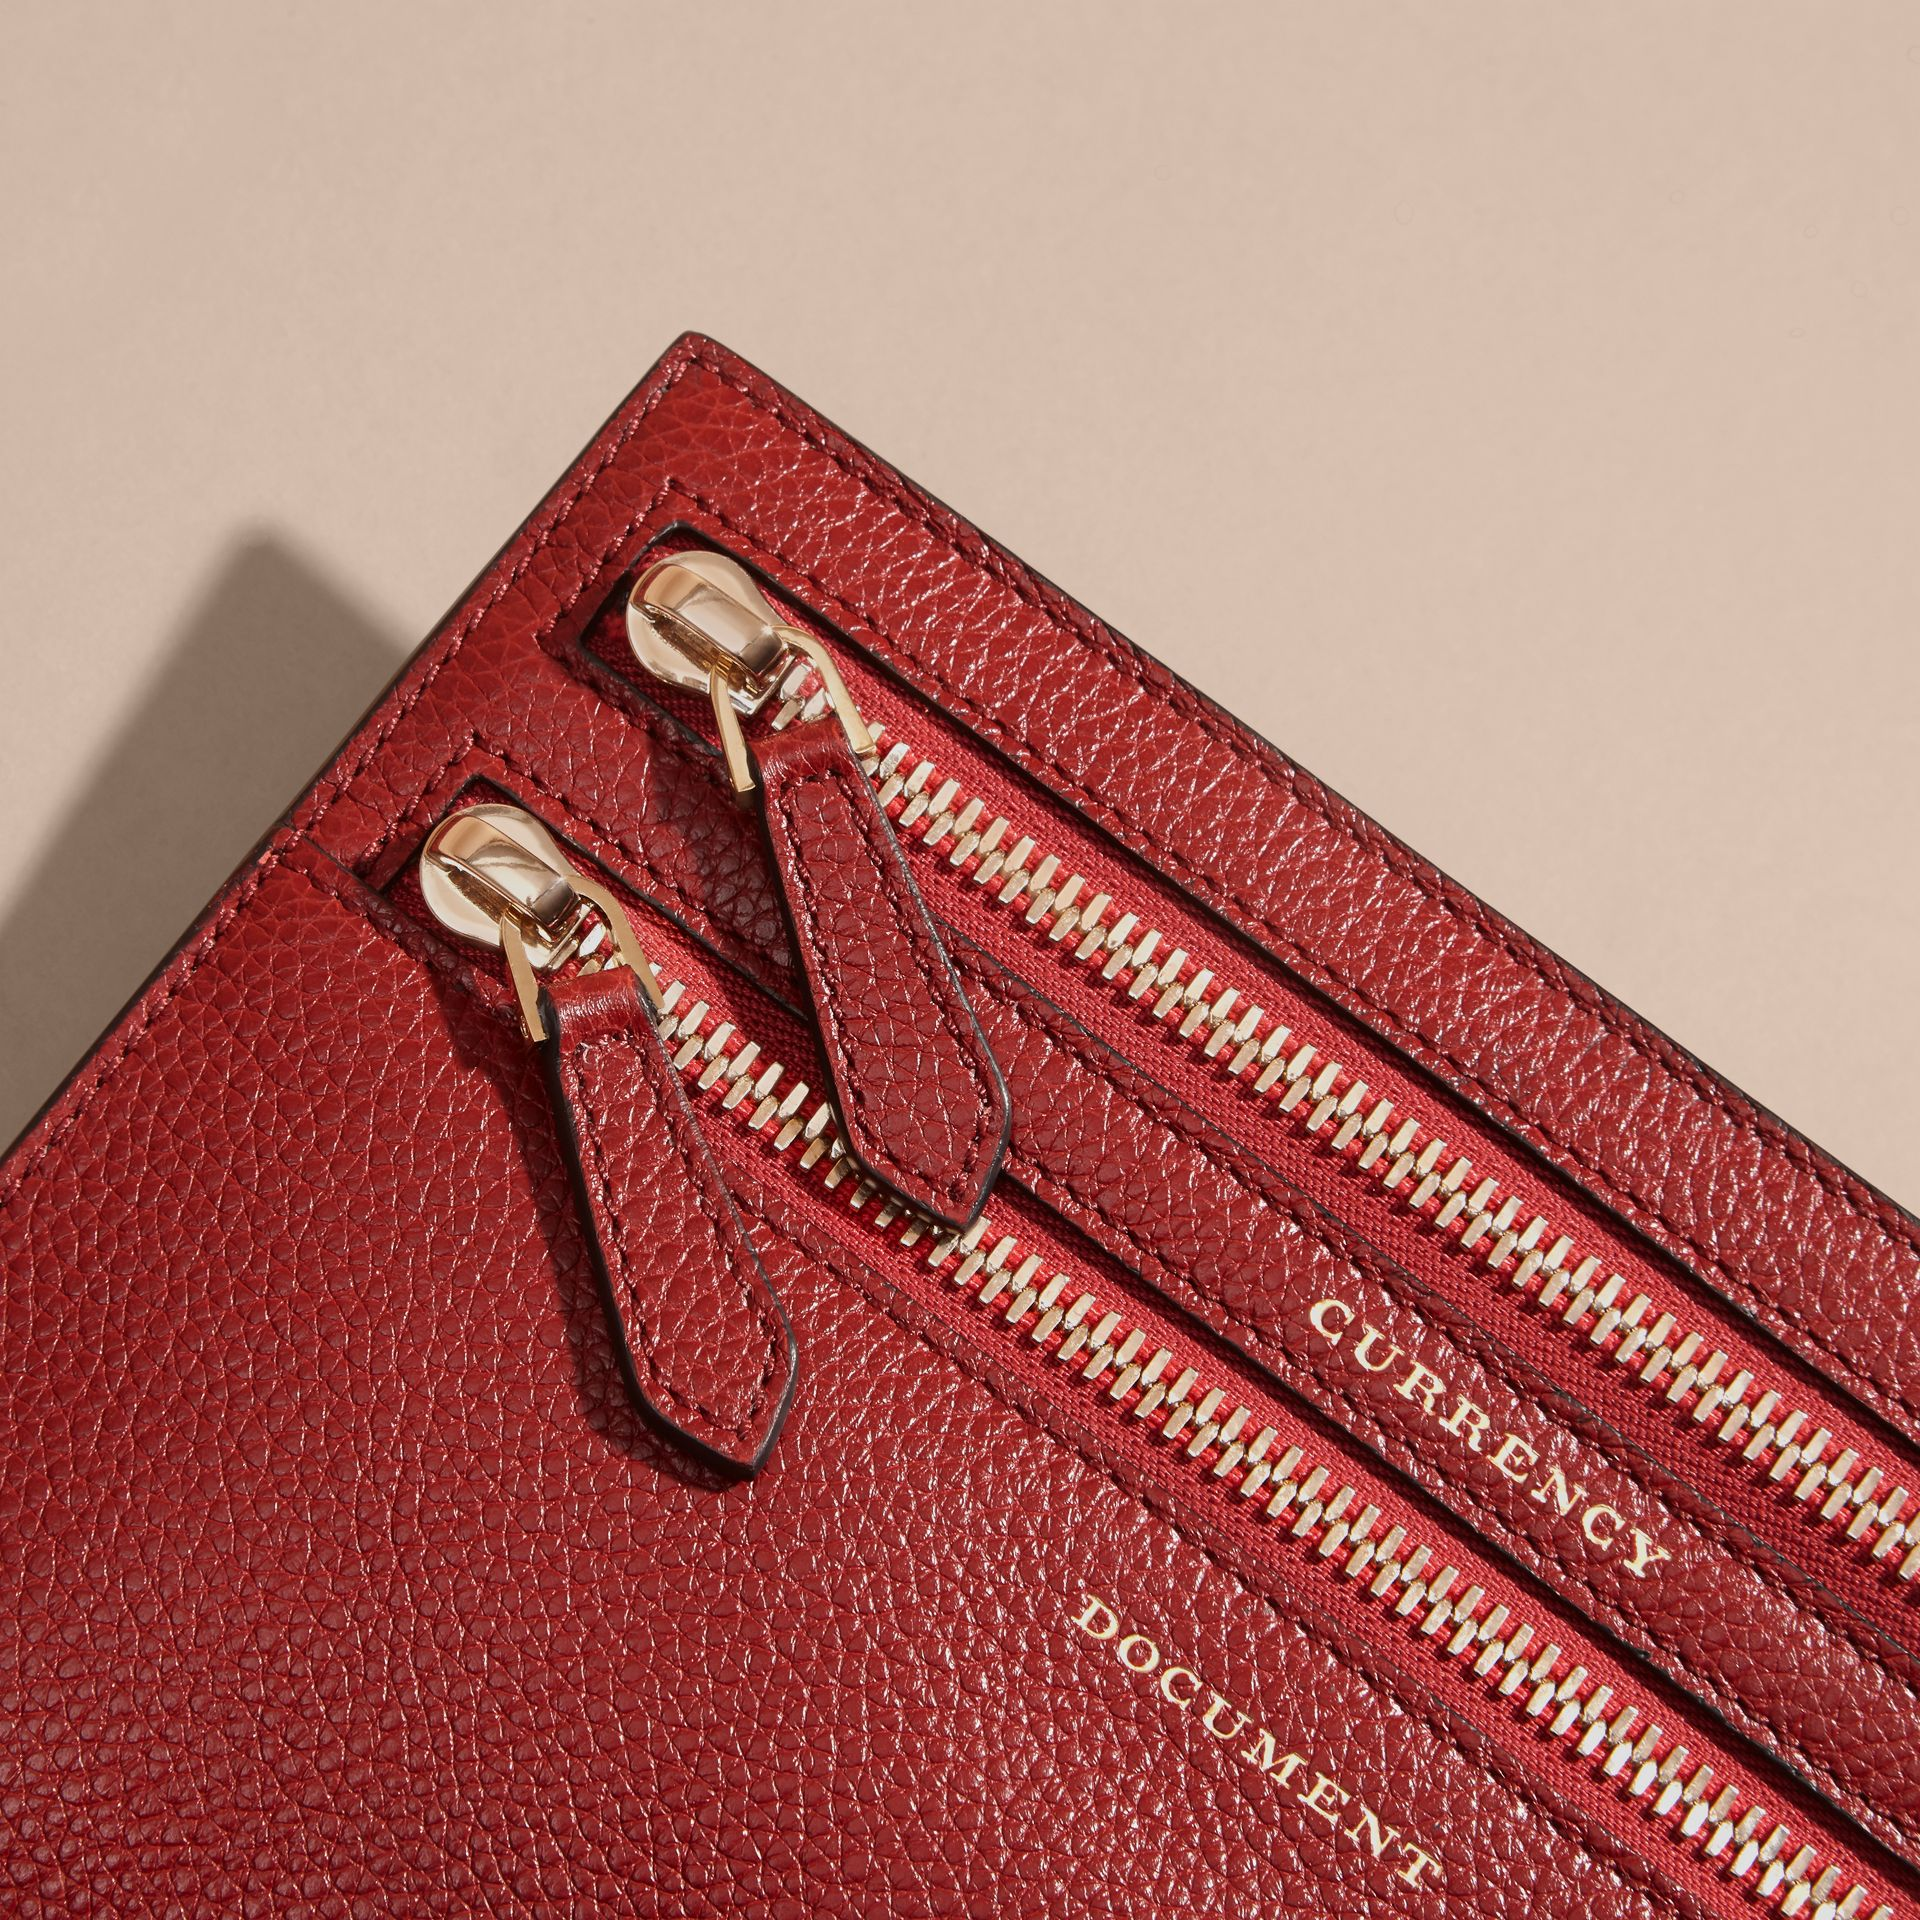 Grainy Leather Currency Wallet in Parade Red | Burberry United Kingdom - gallery image 1